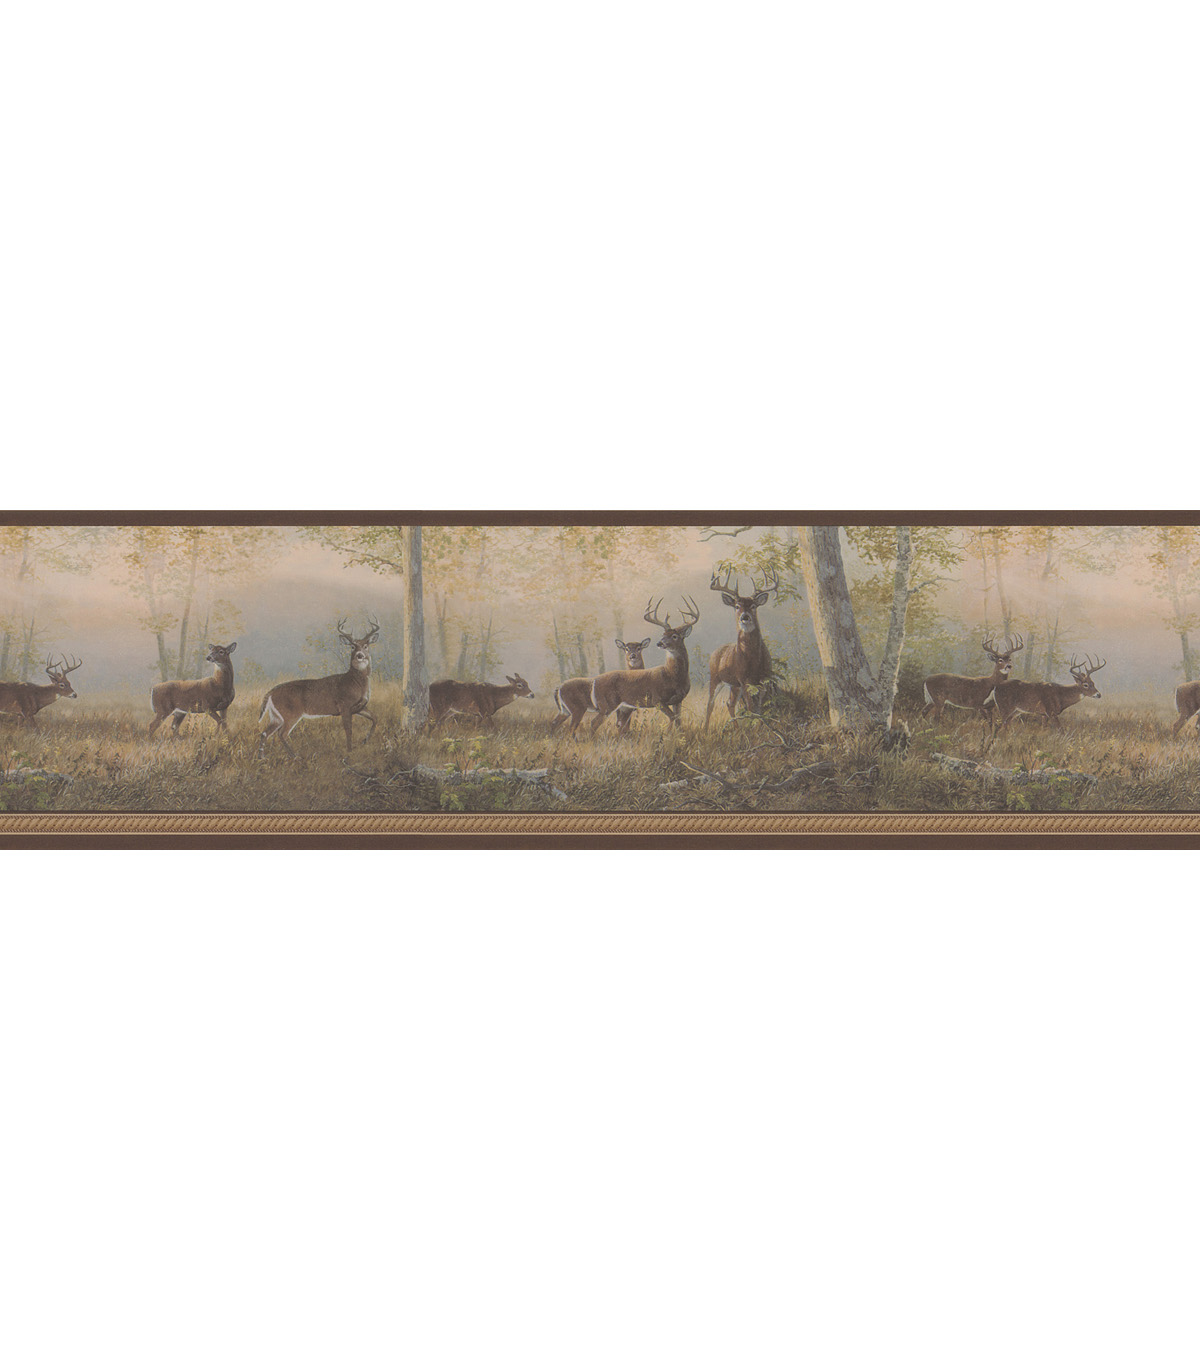 Running Brown Deer Wallpaper Border Jo Ann 1200x1360